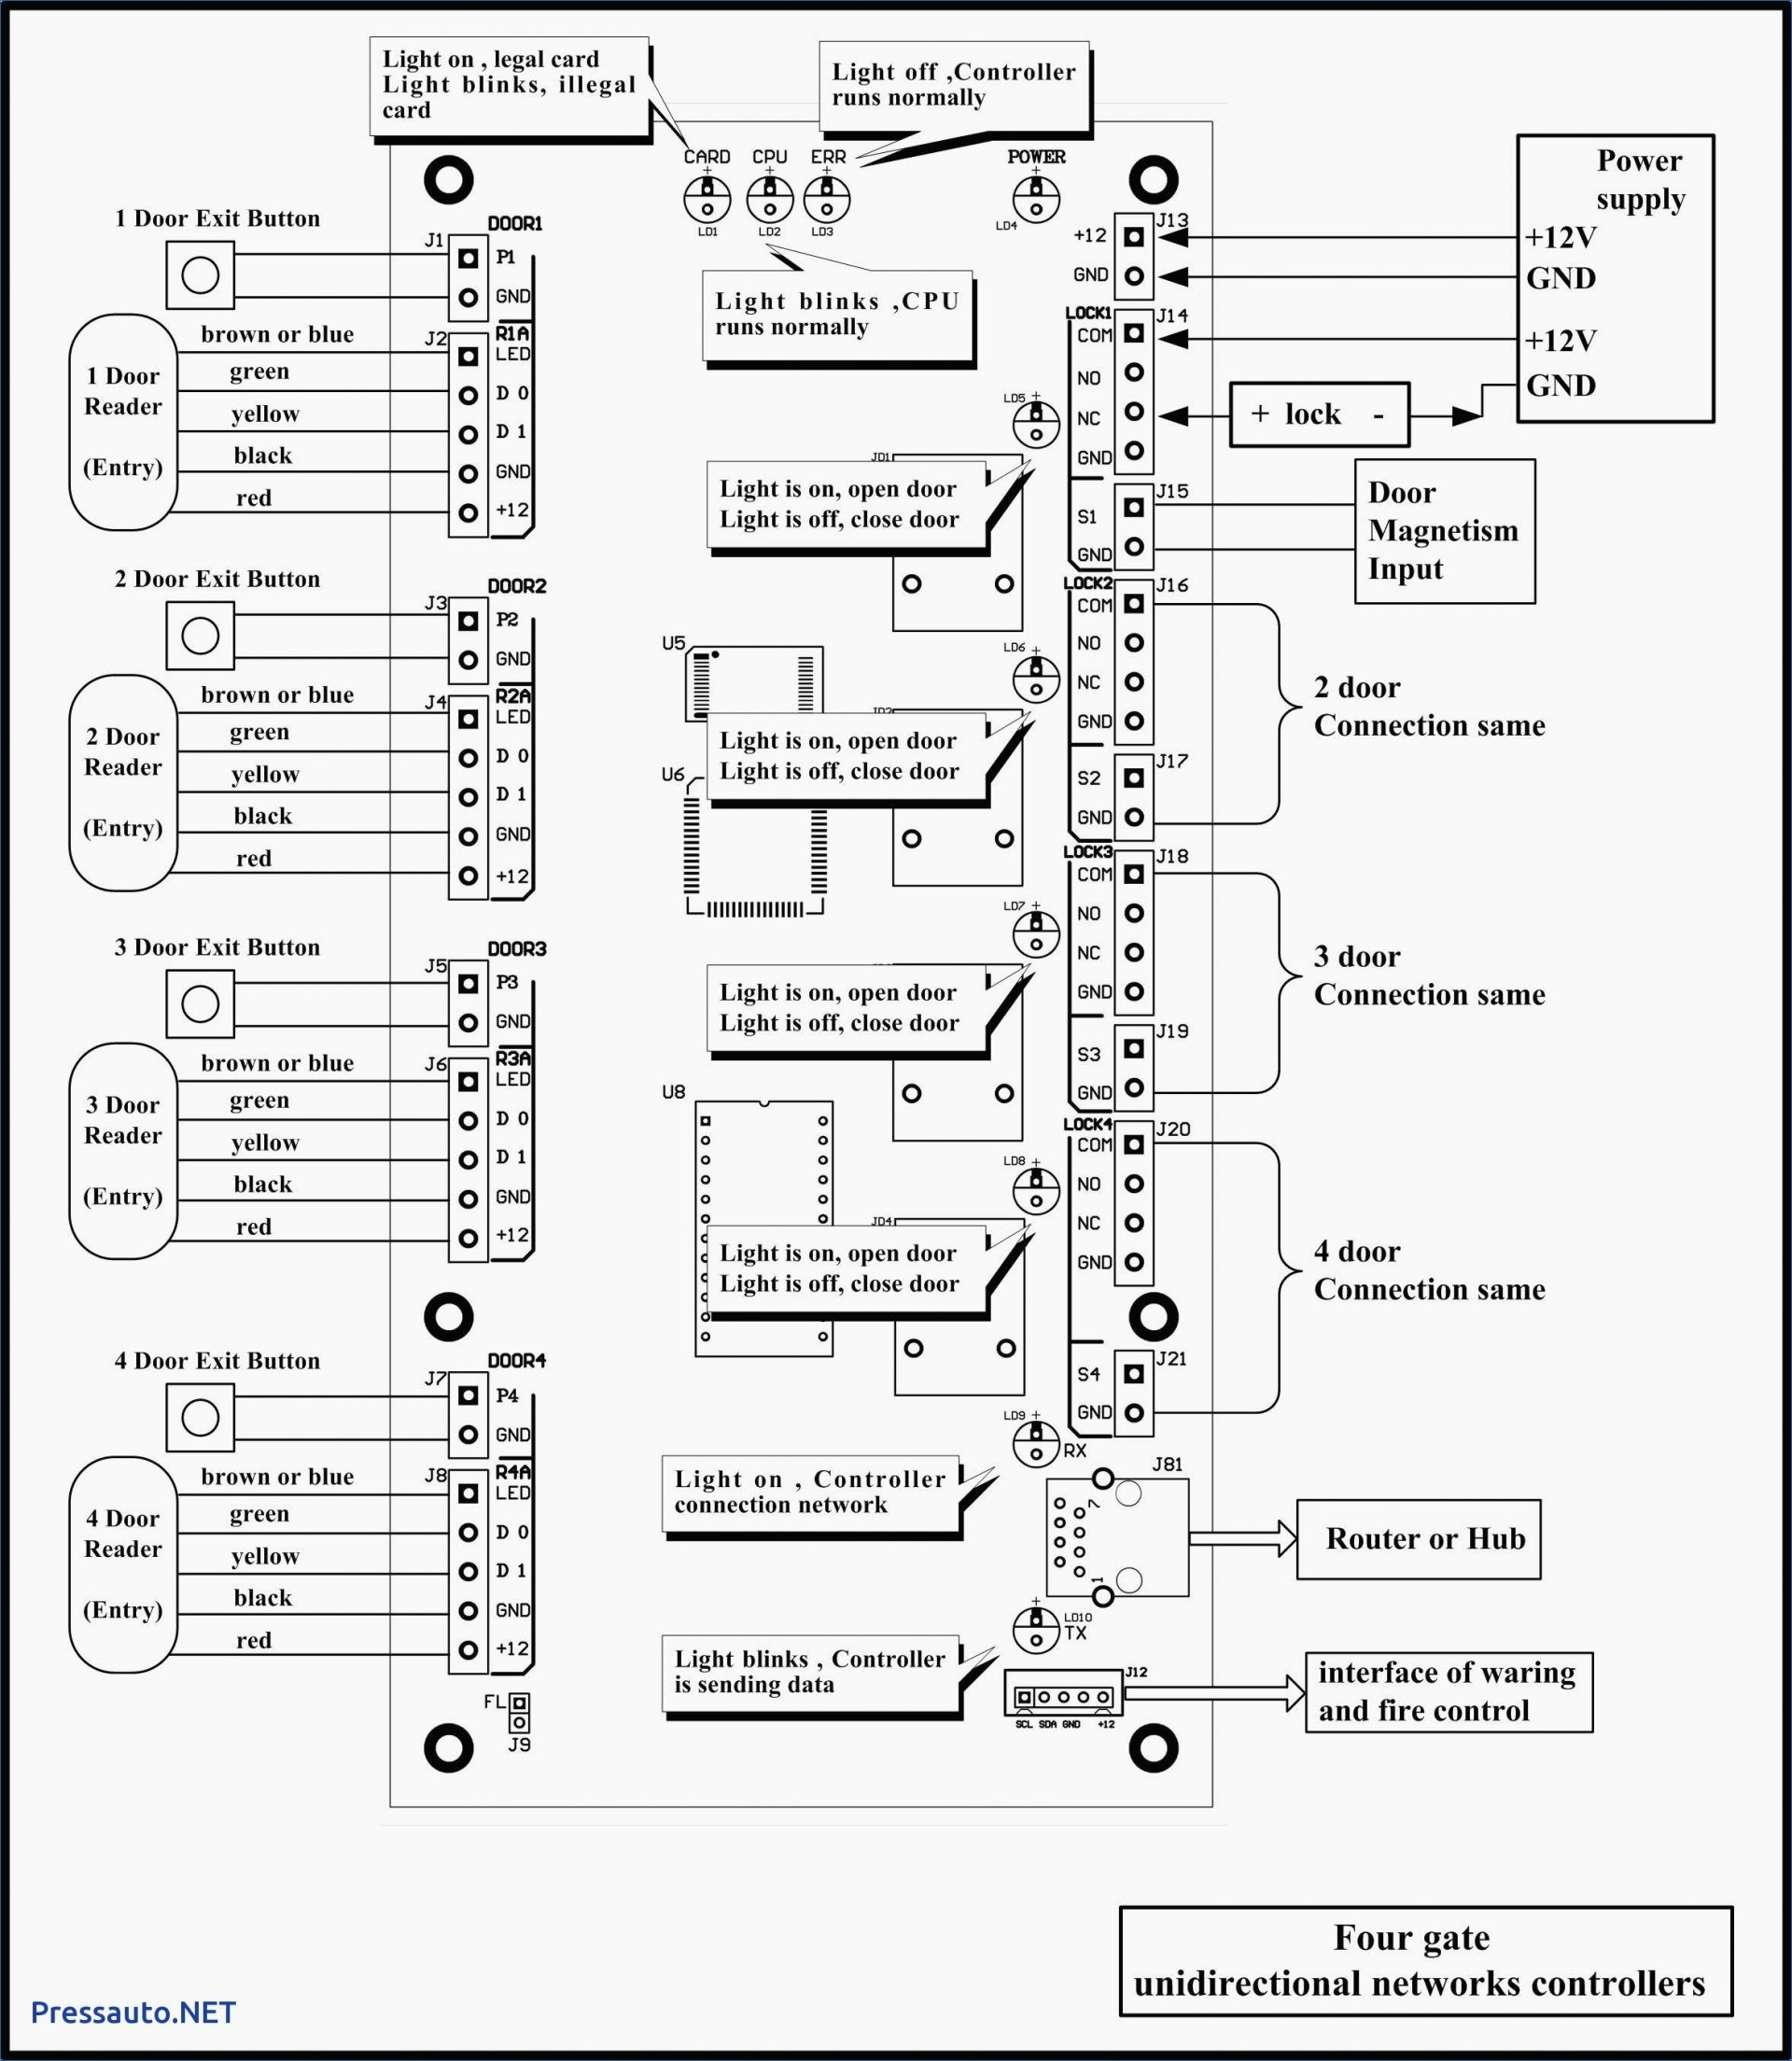 kenwood kdc-210u wiring diagram Collection-Jvc Kenwood Wiring Diagram Valid Kenwood Kdc 210u Wiring Diagram Gallery 20-s